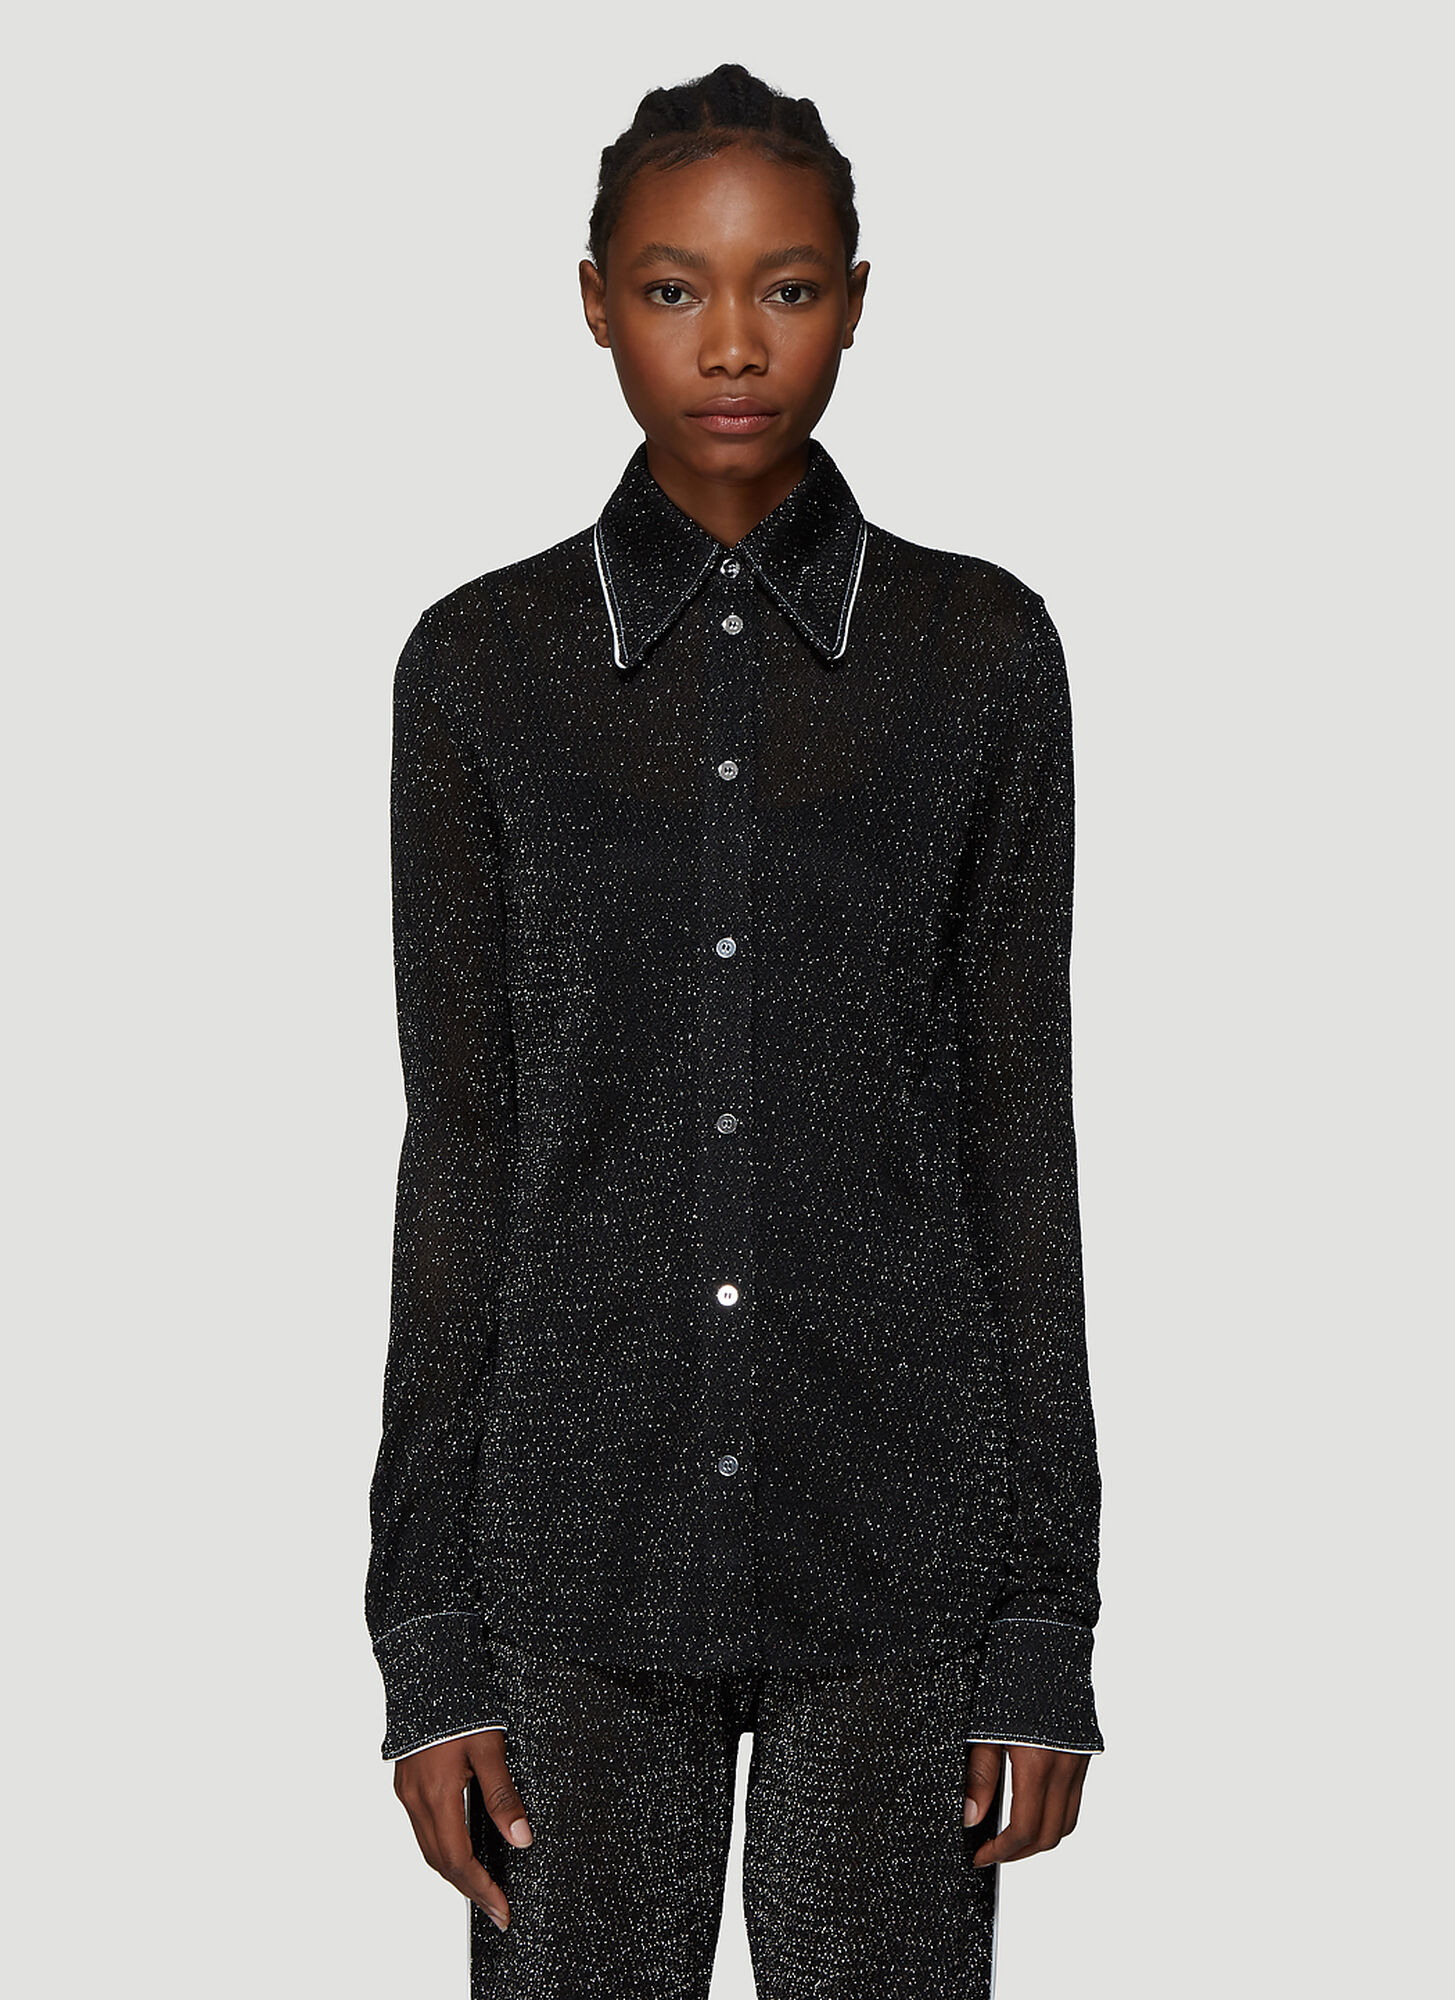 Acne Studios Lurex Shirt in Black